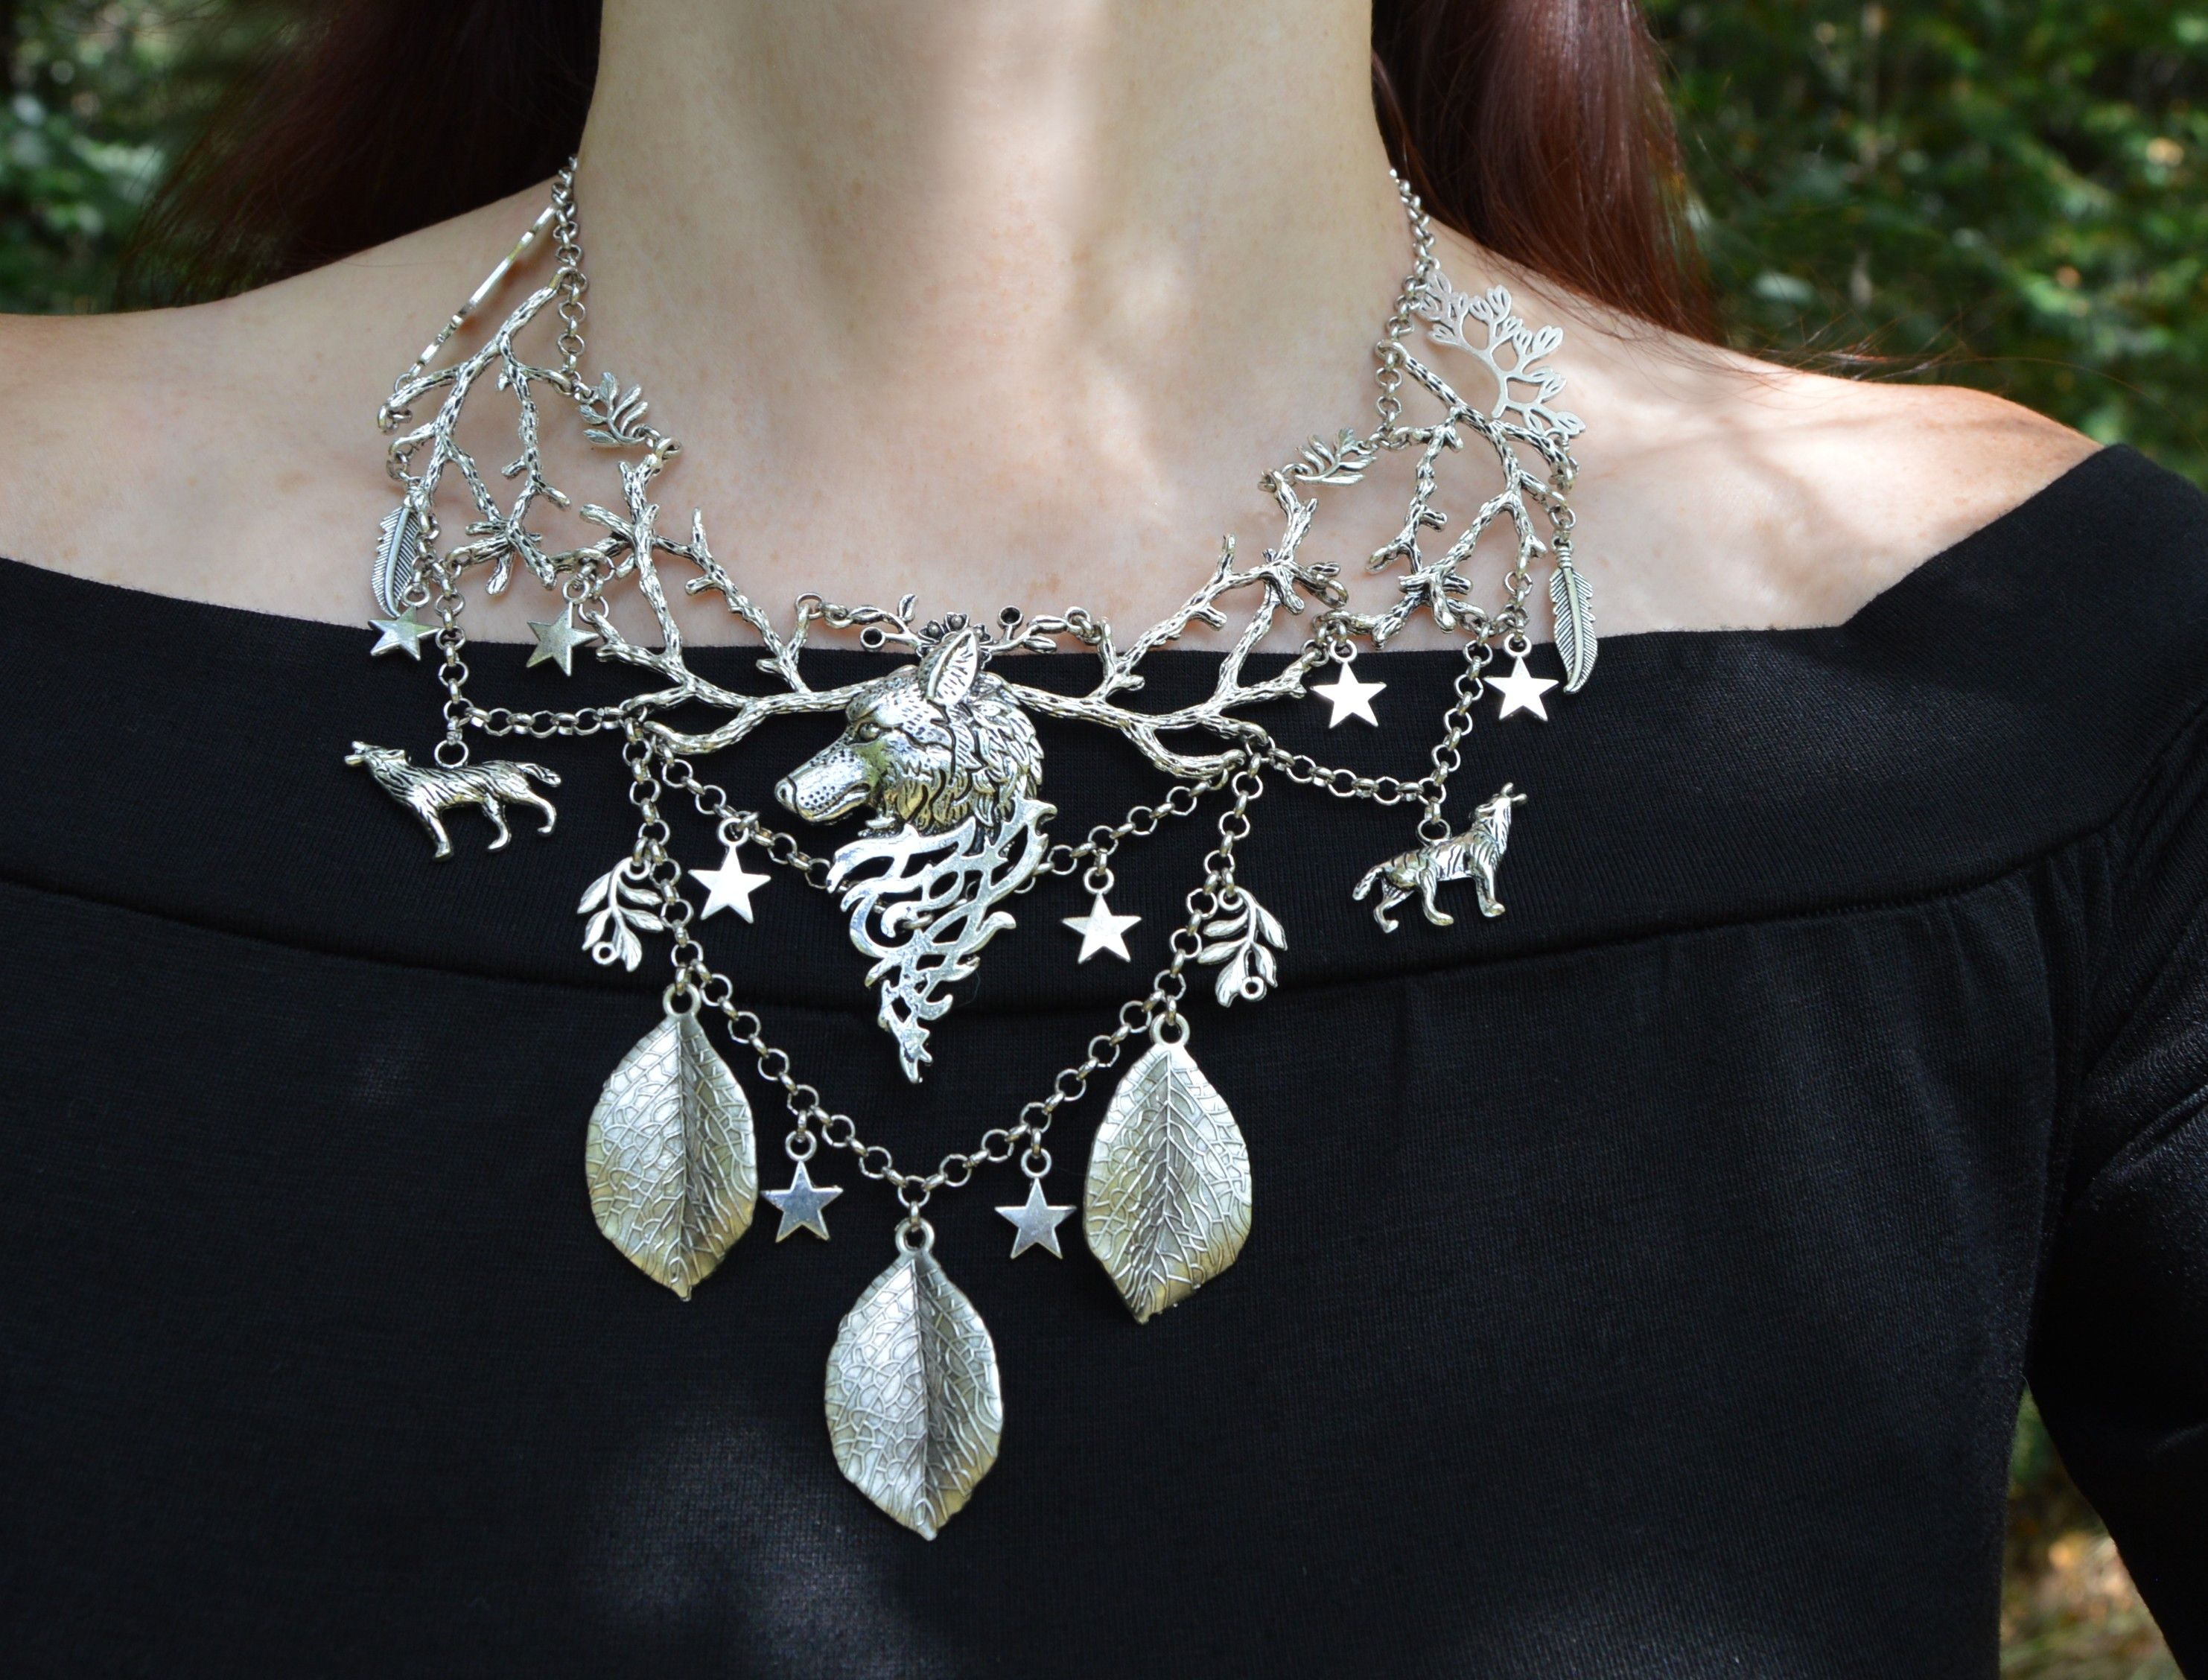 Opalite wolf necklace dark mori fashion wicca necklace white wolf jewelry witchy opalite necklace snow queen ice queen witch jewelry